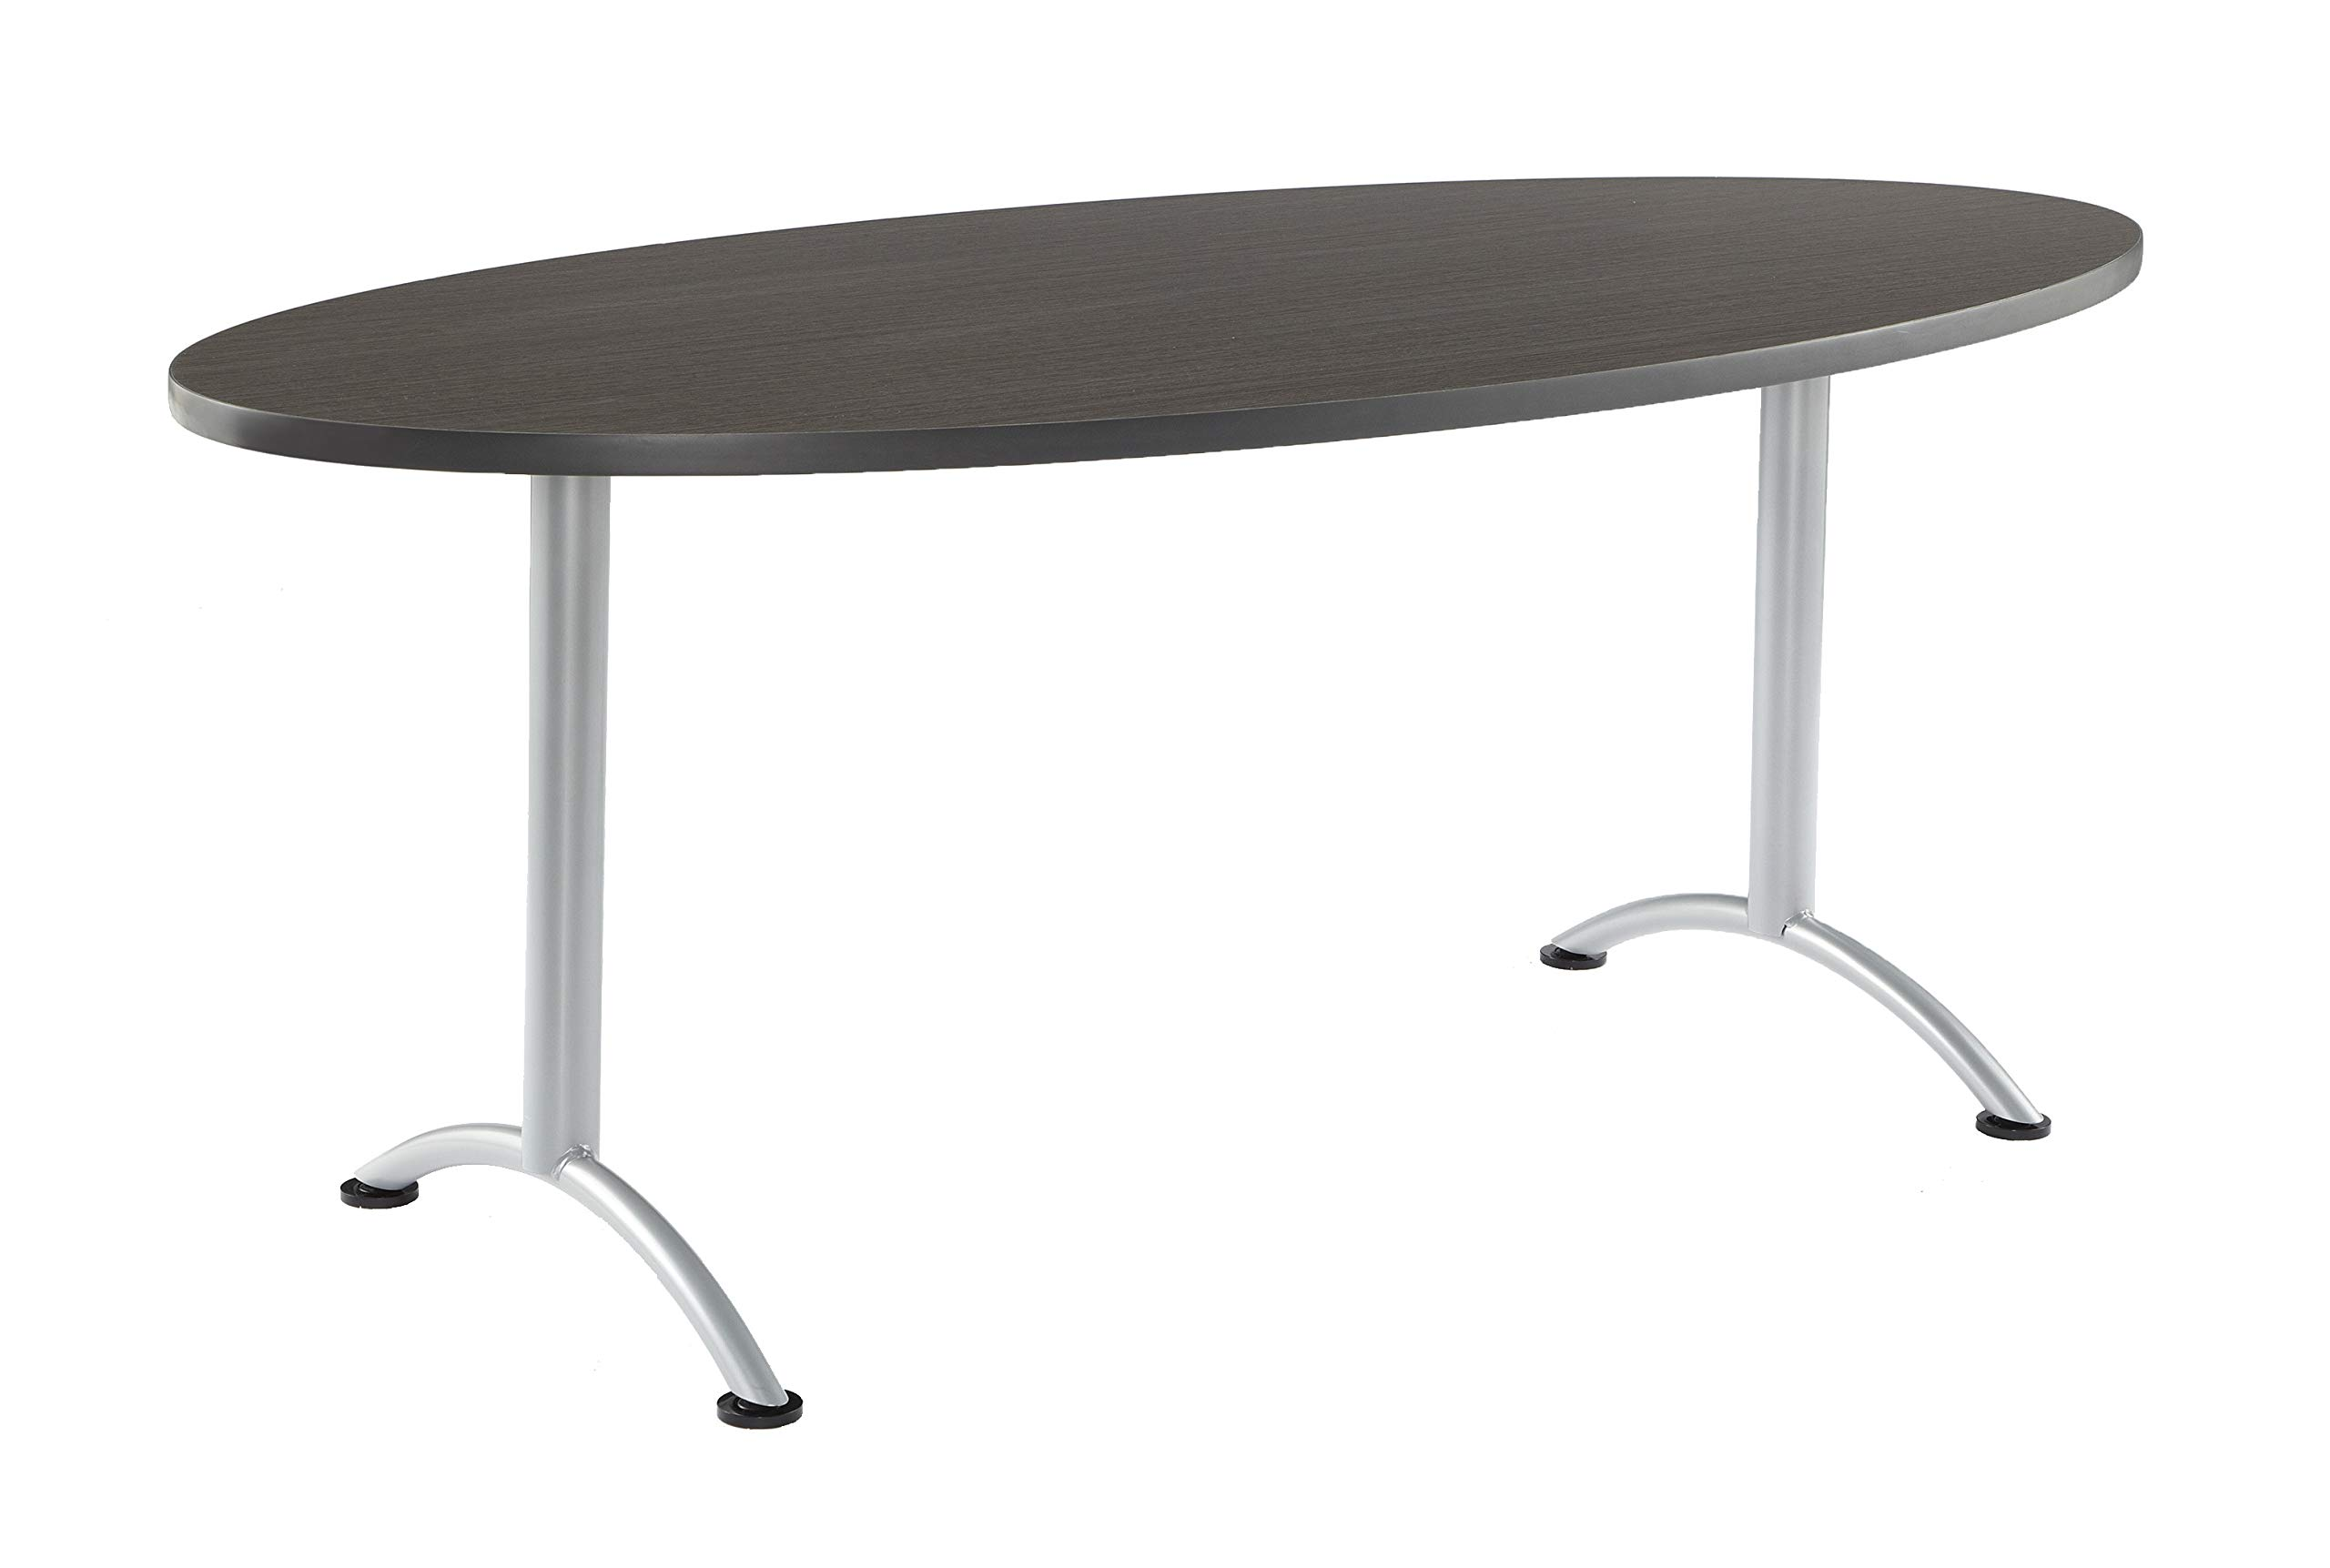 Iceberg ICE69425 ARC 6-foot Oval Conference Table, 36'' x 72'', Gray Walnut/Silver Leg by Iceberg